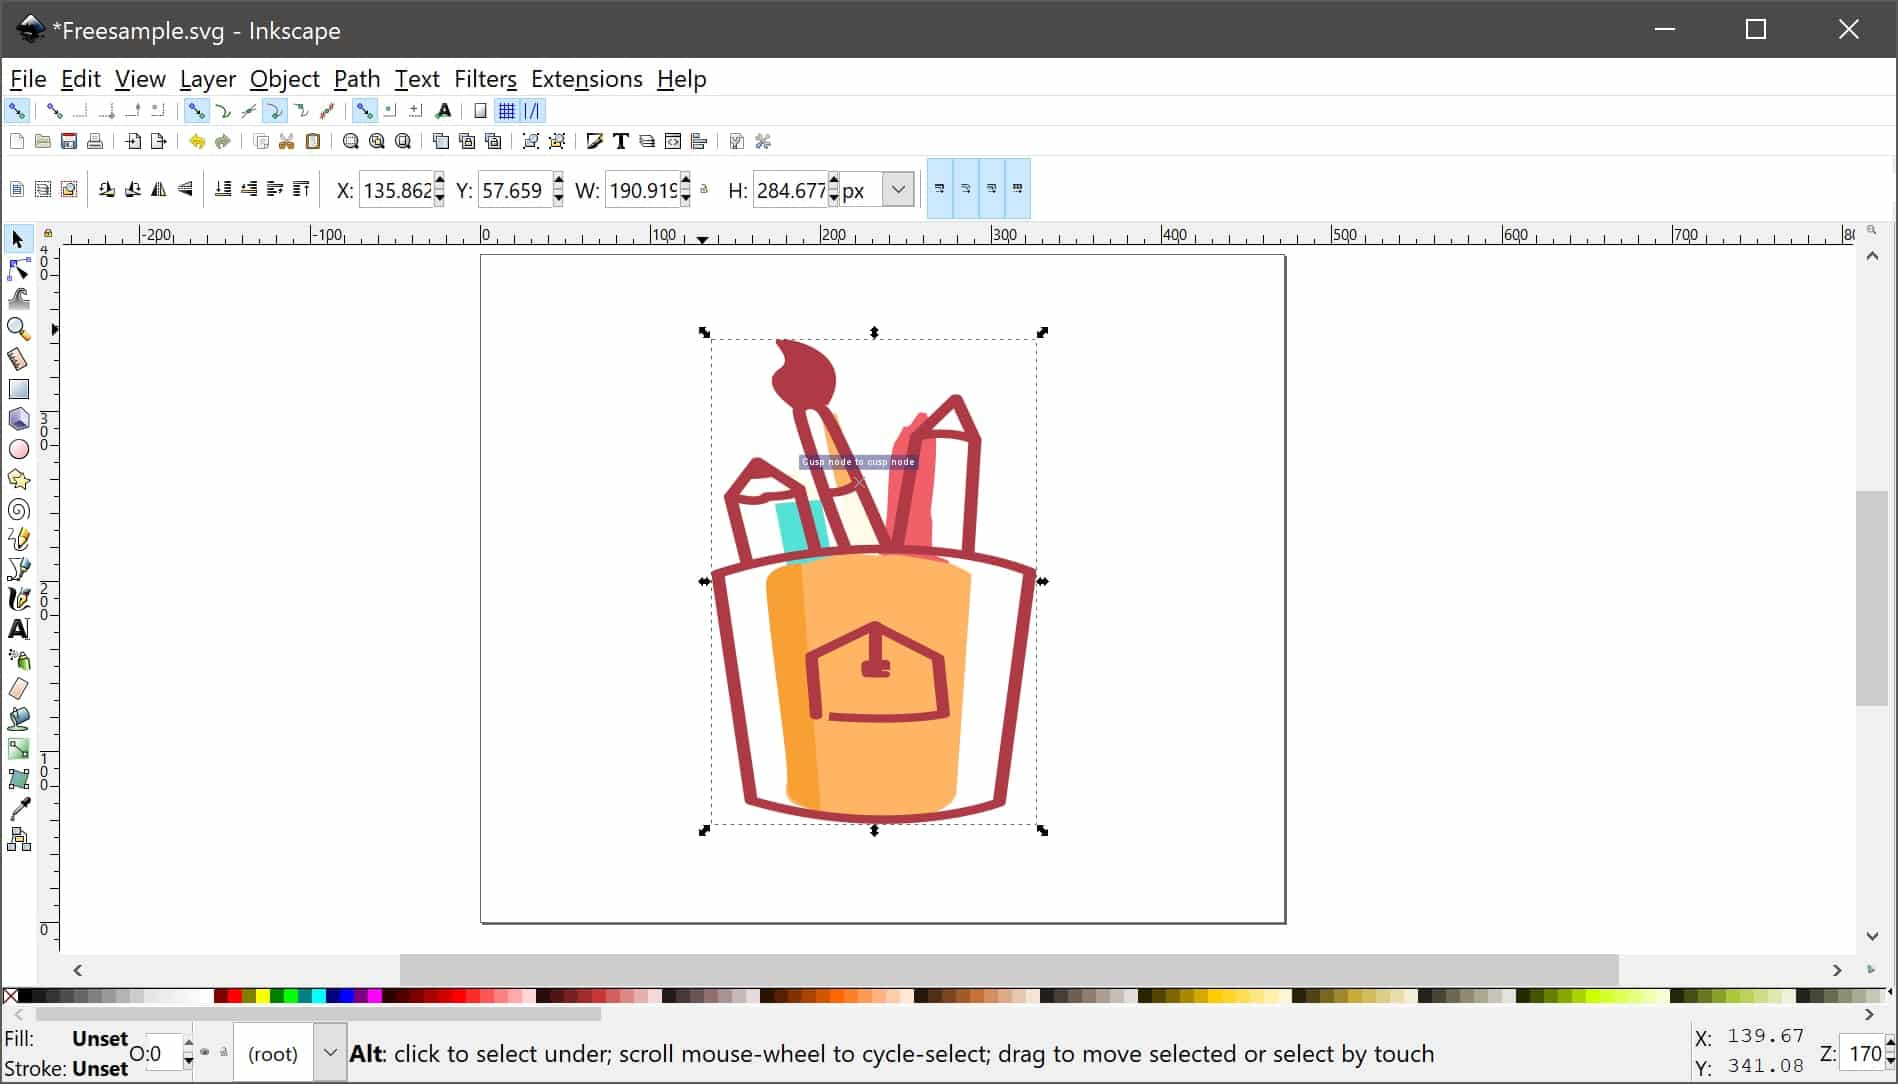 Inkscape is an open-source Procreate alternative that is available for Windows and Linux.